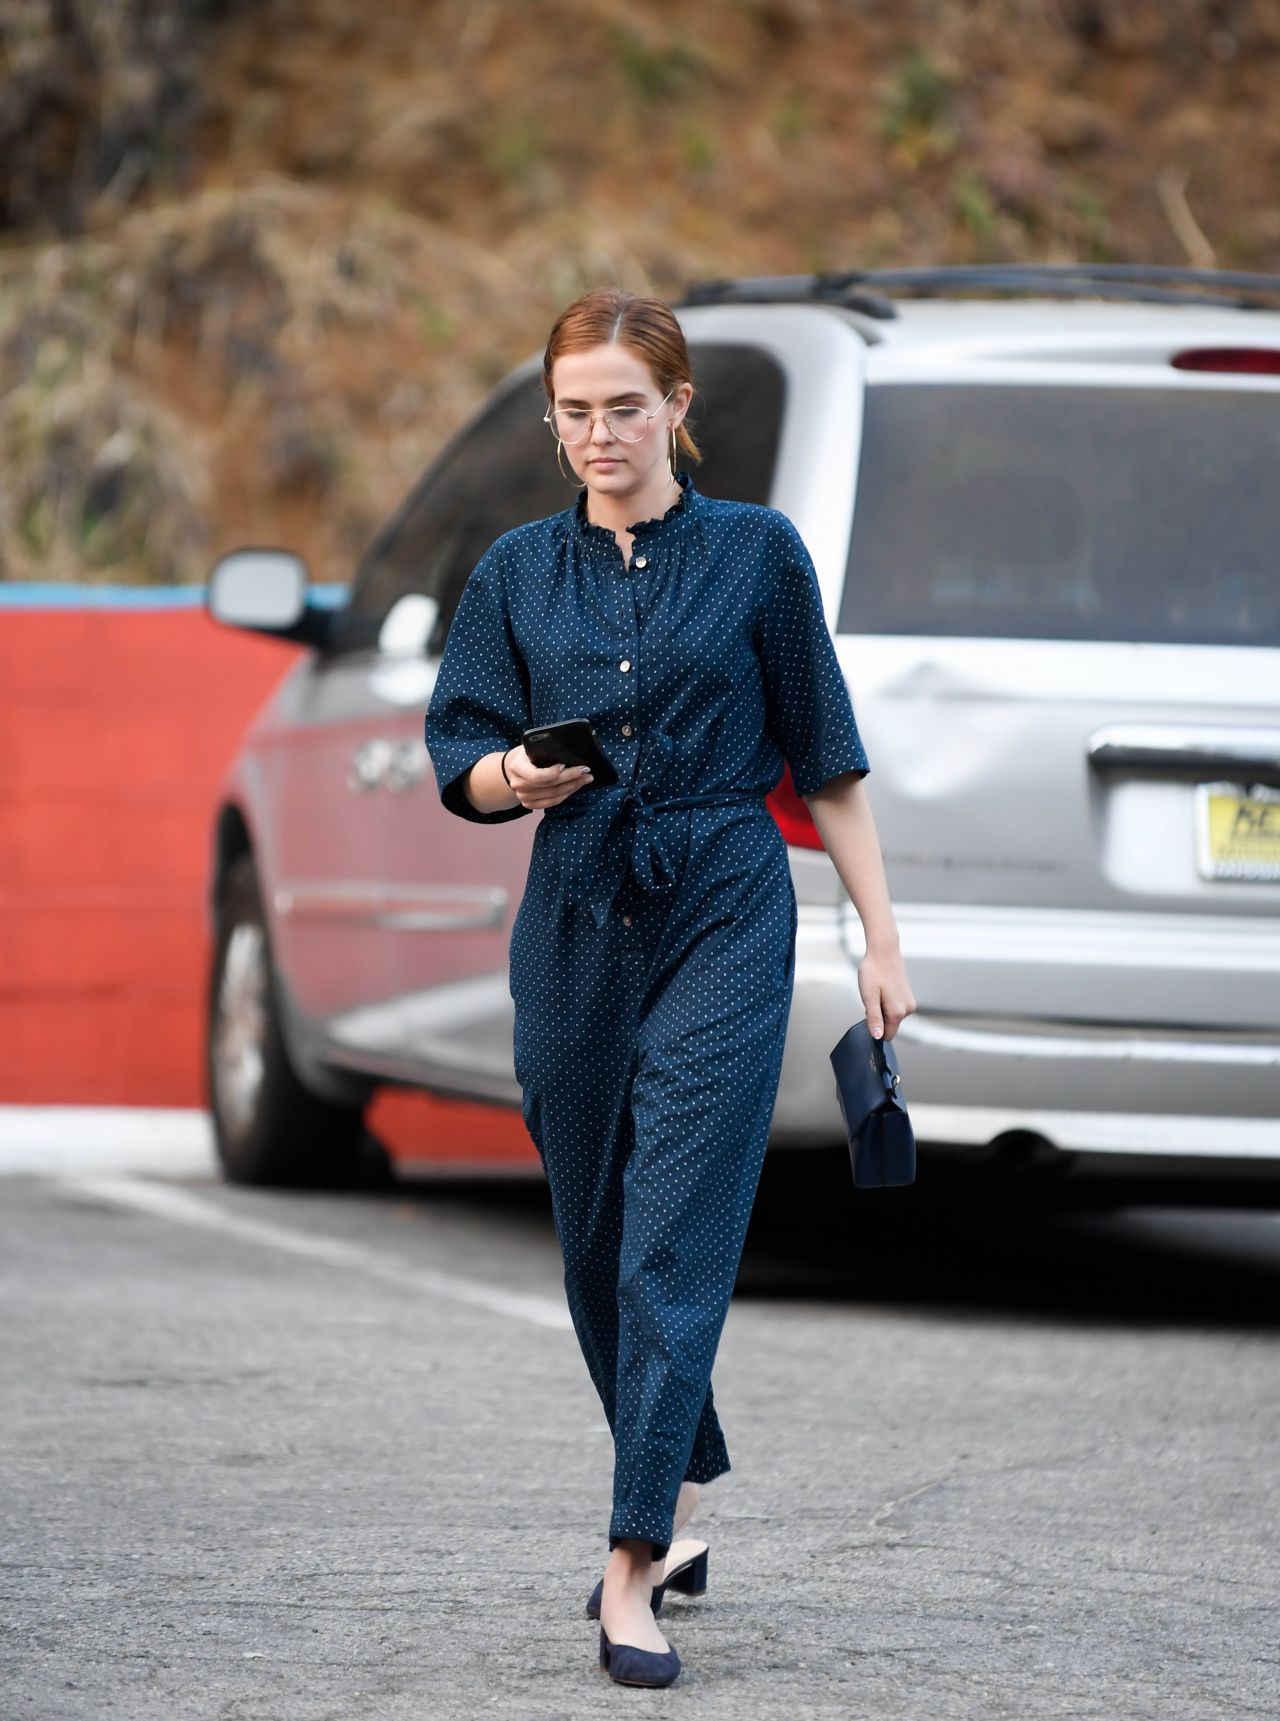 http://celebmafia.com/wp-content/uploads/2018/05/zoey-deutch-out-in-los-angeles-05-22-2018-6.jpg